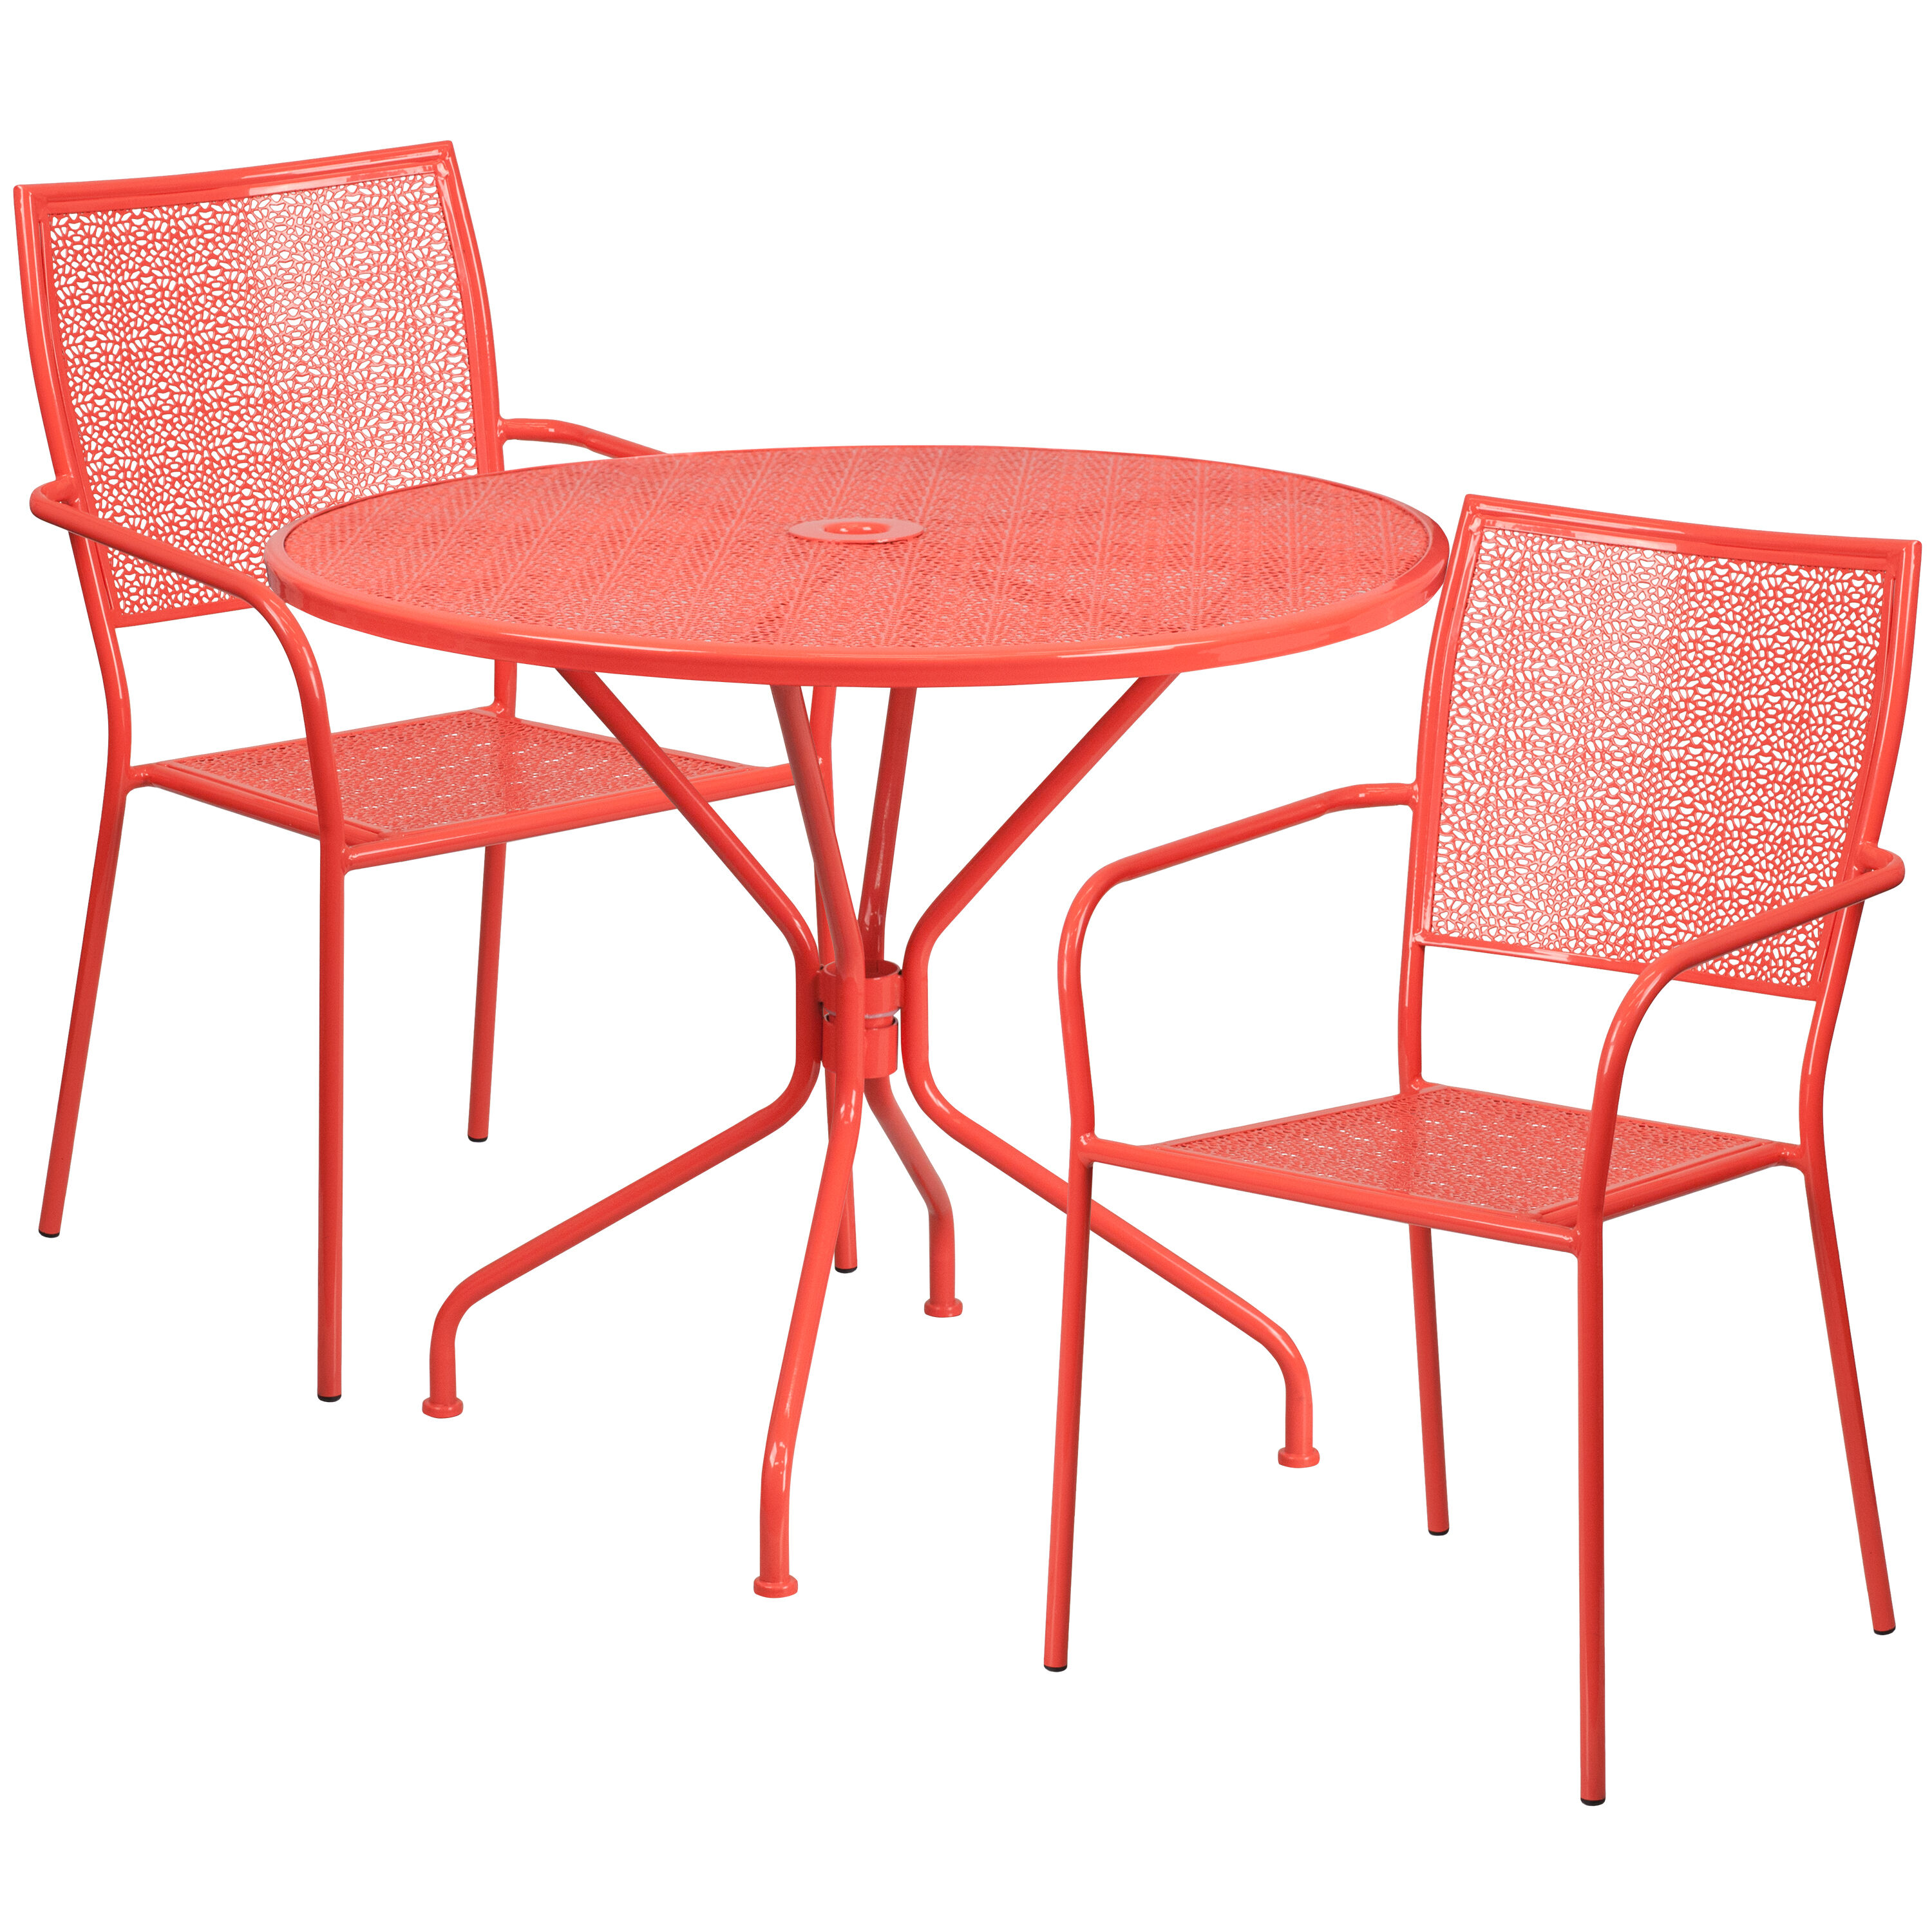 ... Our 35.25u0027u0027 Round Coral Indoor Outdoor Steel Patio Table Set With 2  Square